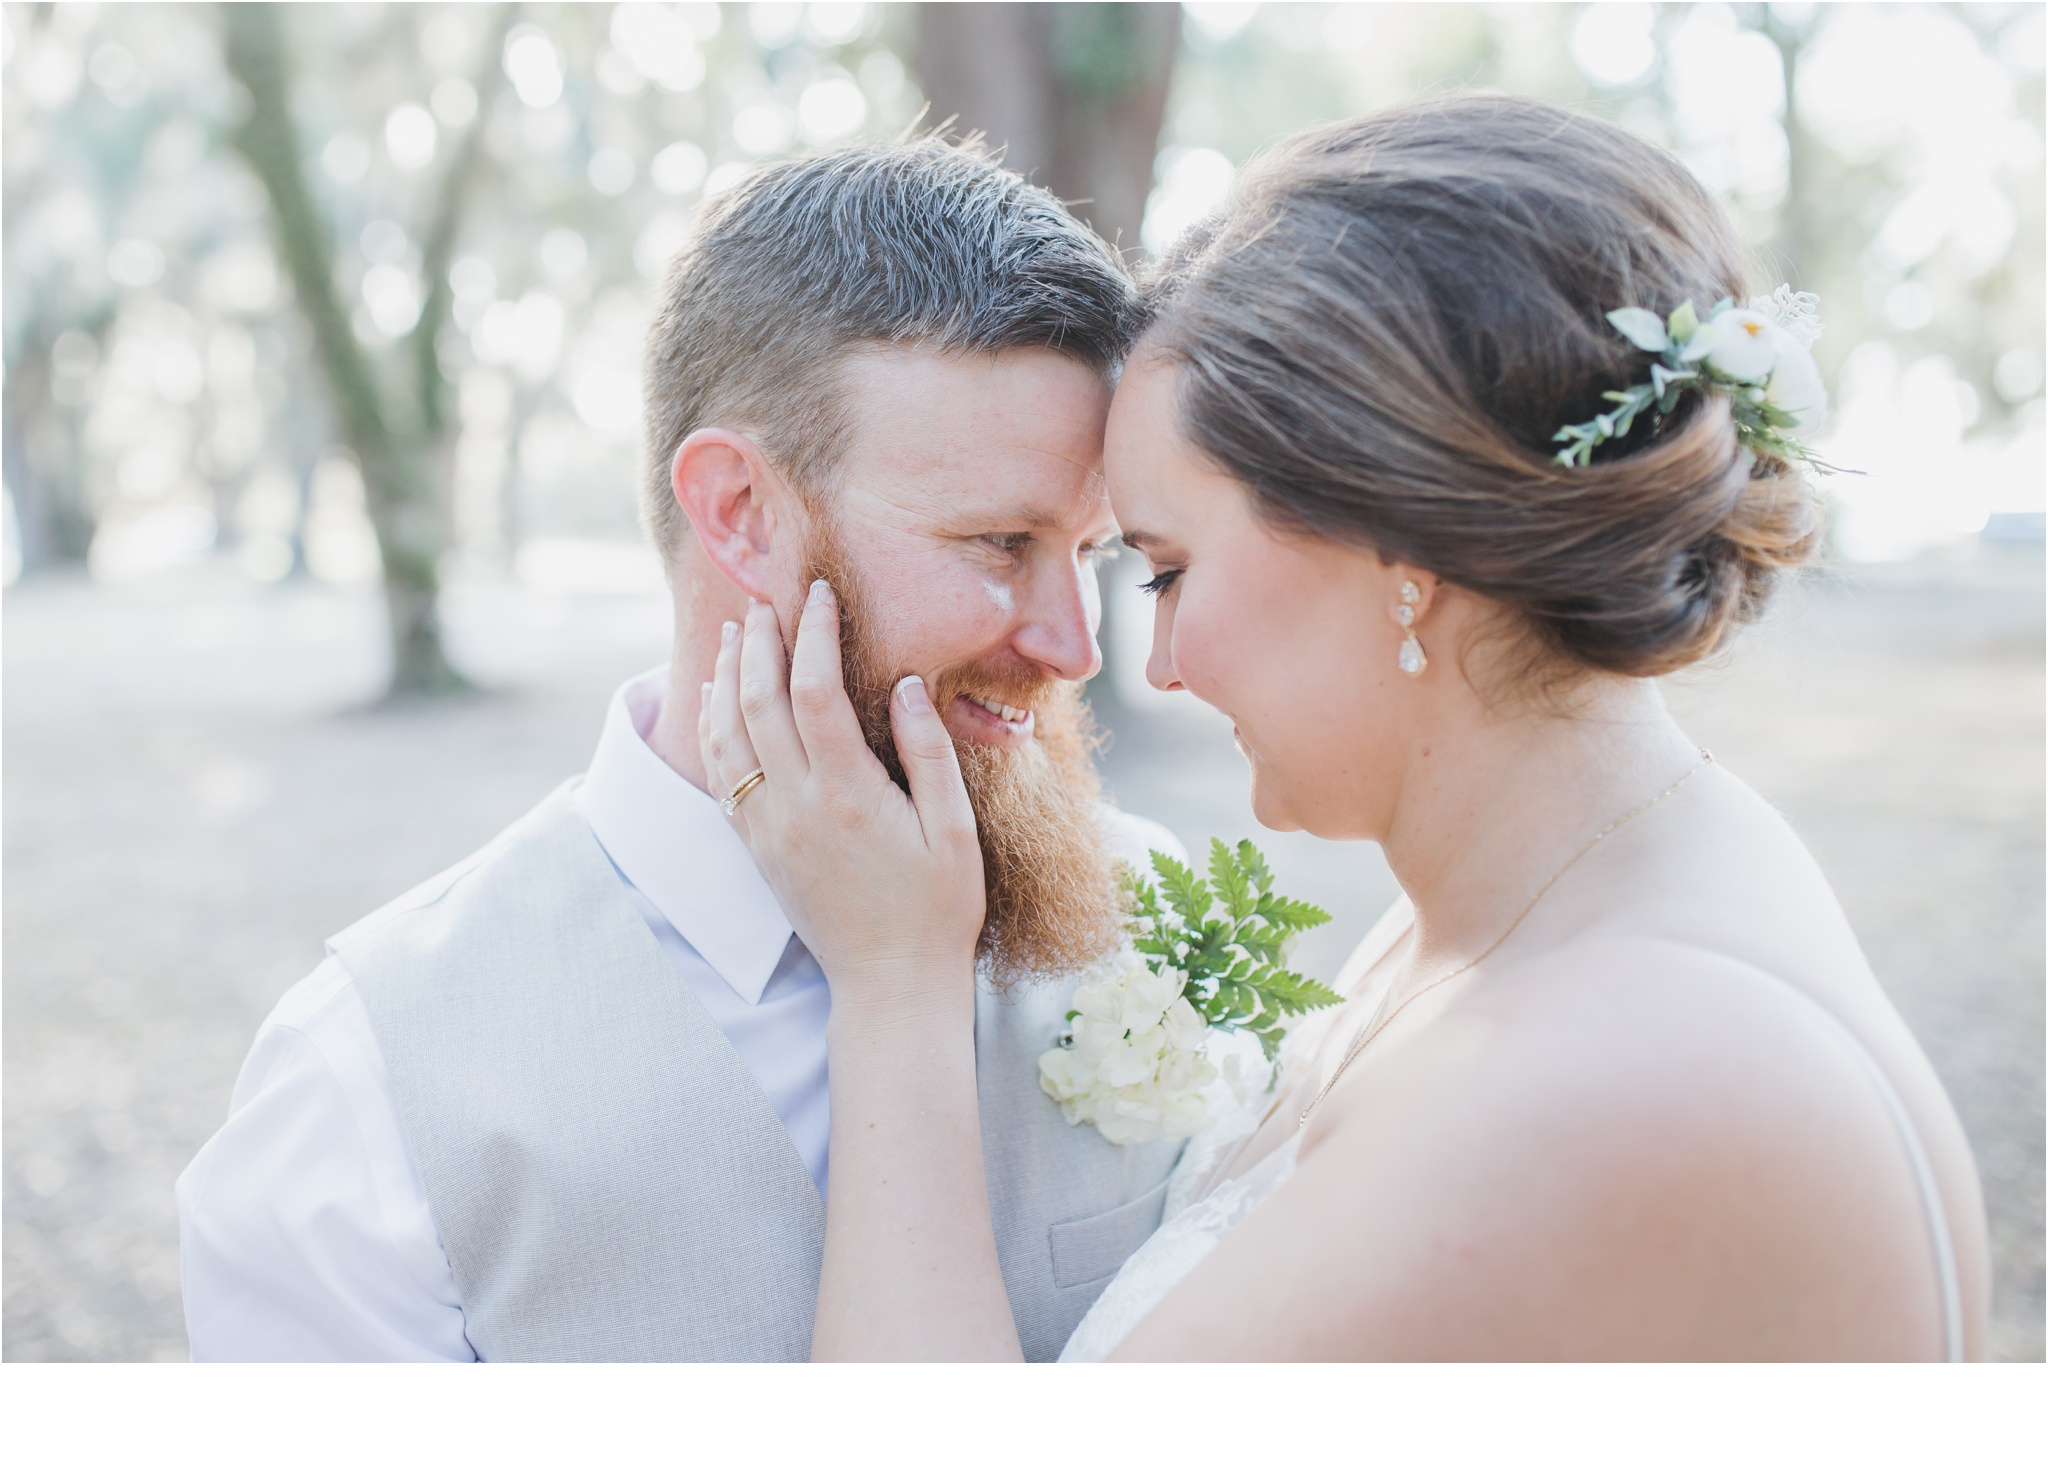 Rainey_Gregg_Photography_St._Simons_Island_Georgia_California_Wedding_Portrait_Photography_1721.jpg